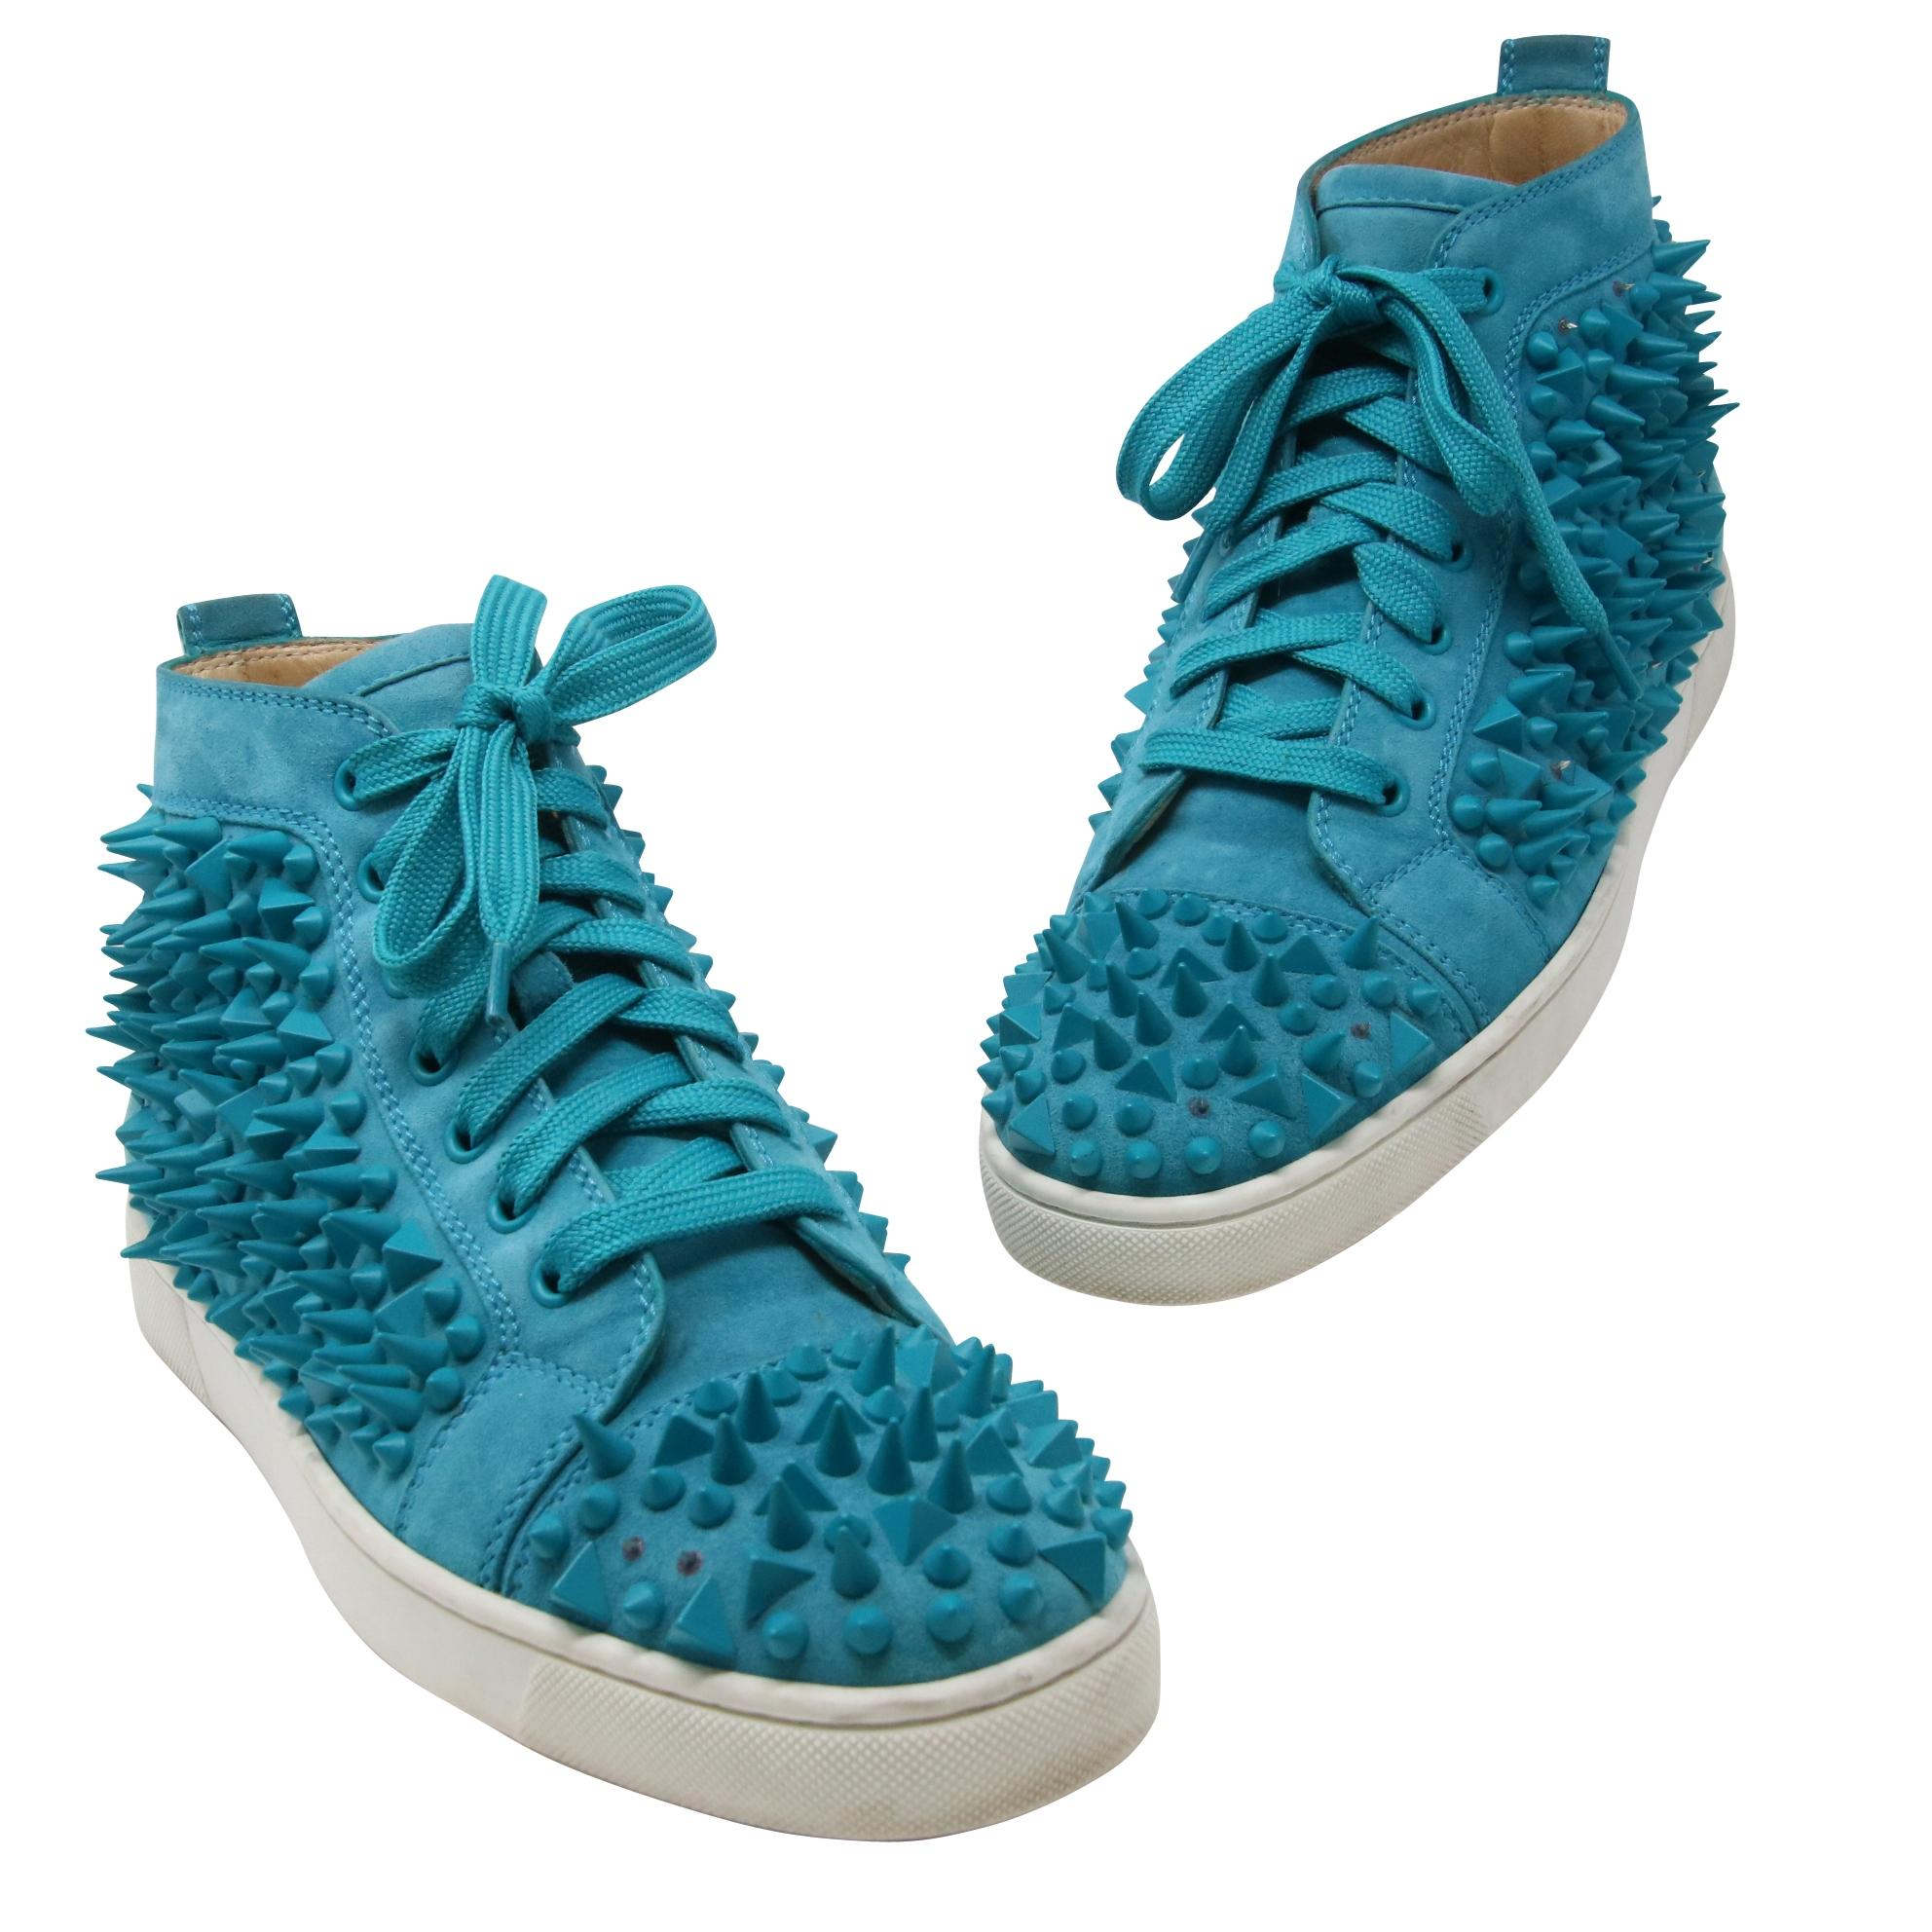 Christian Louboutin Turquoise Classic Louis Flat Studded Spikes Men's High Top Sneakers 41 Formal Shoes Size US 8 Regular (M, B)